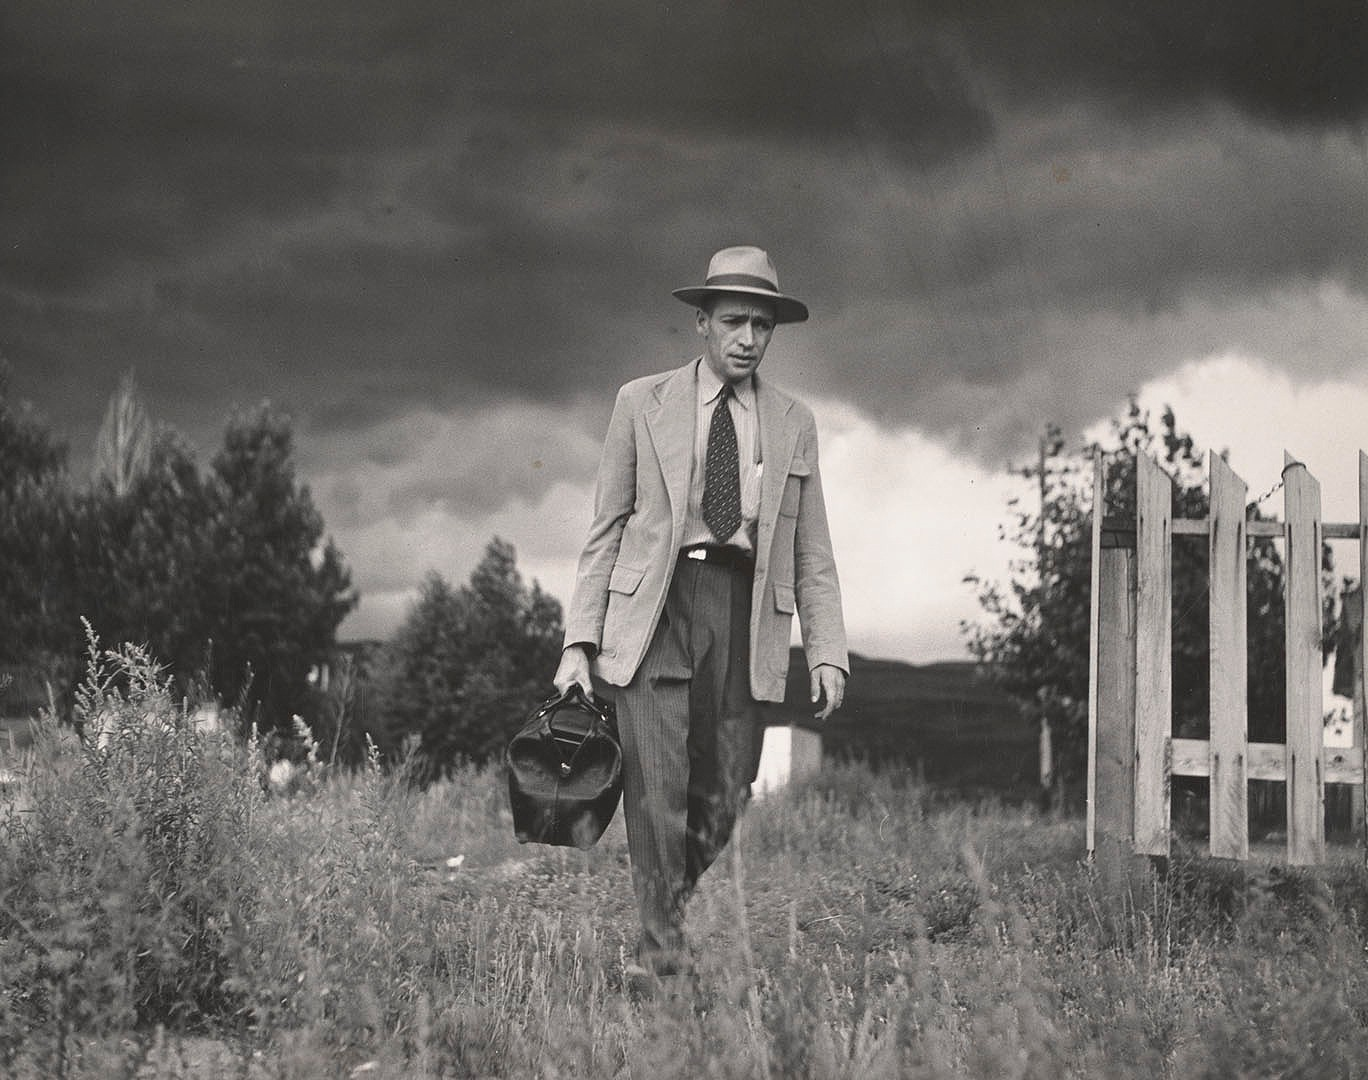 the life of an american country doctor was heroic necessary and dr earnest ceriani makes a home to patients near kremmling colorado in 1948 w eugene smith life